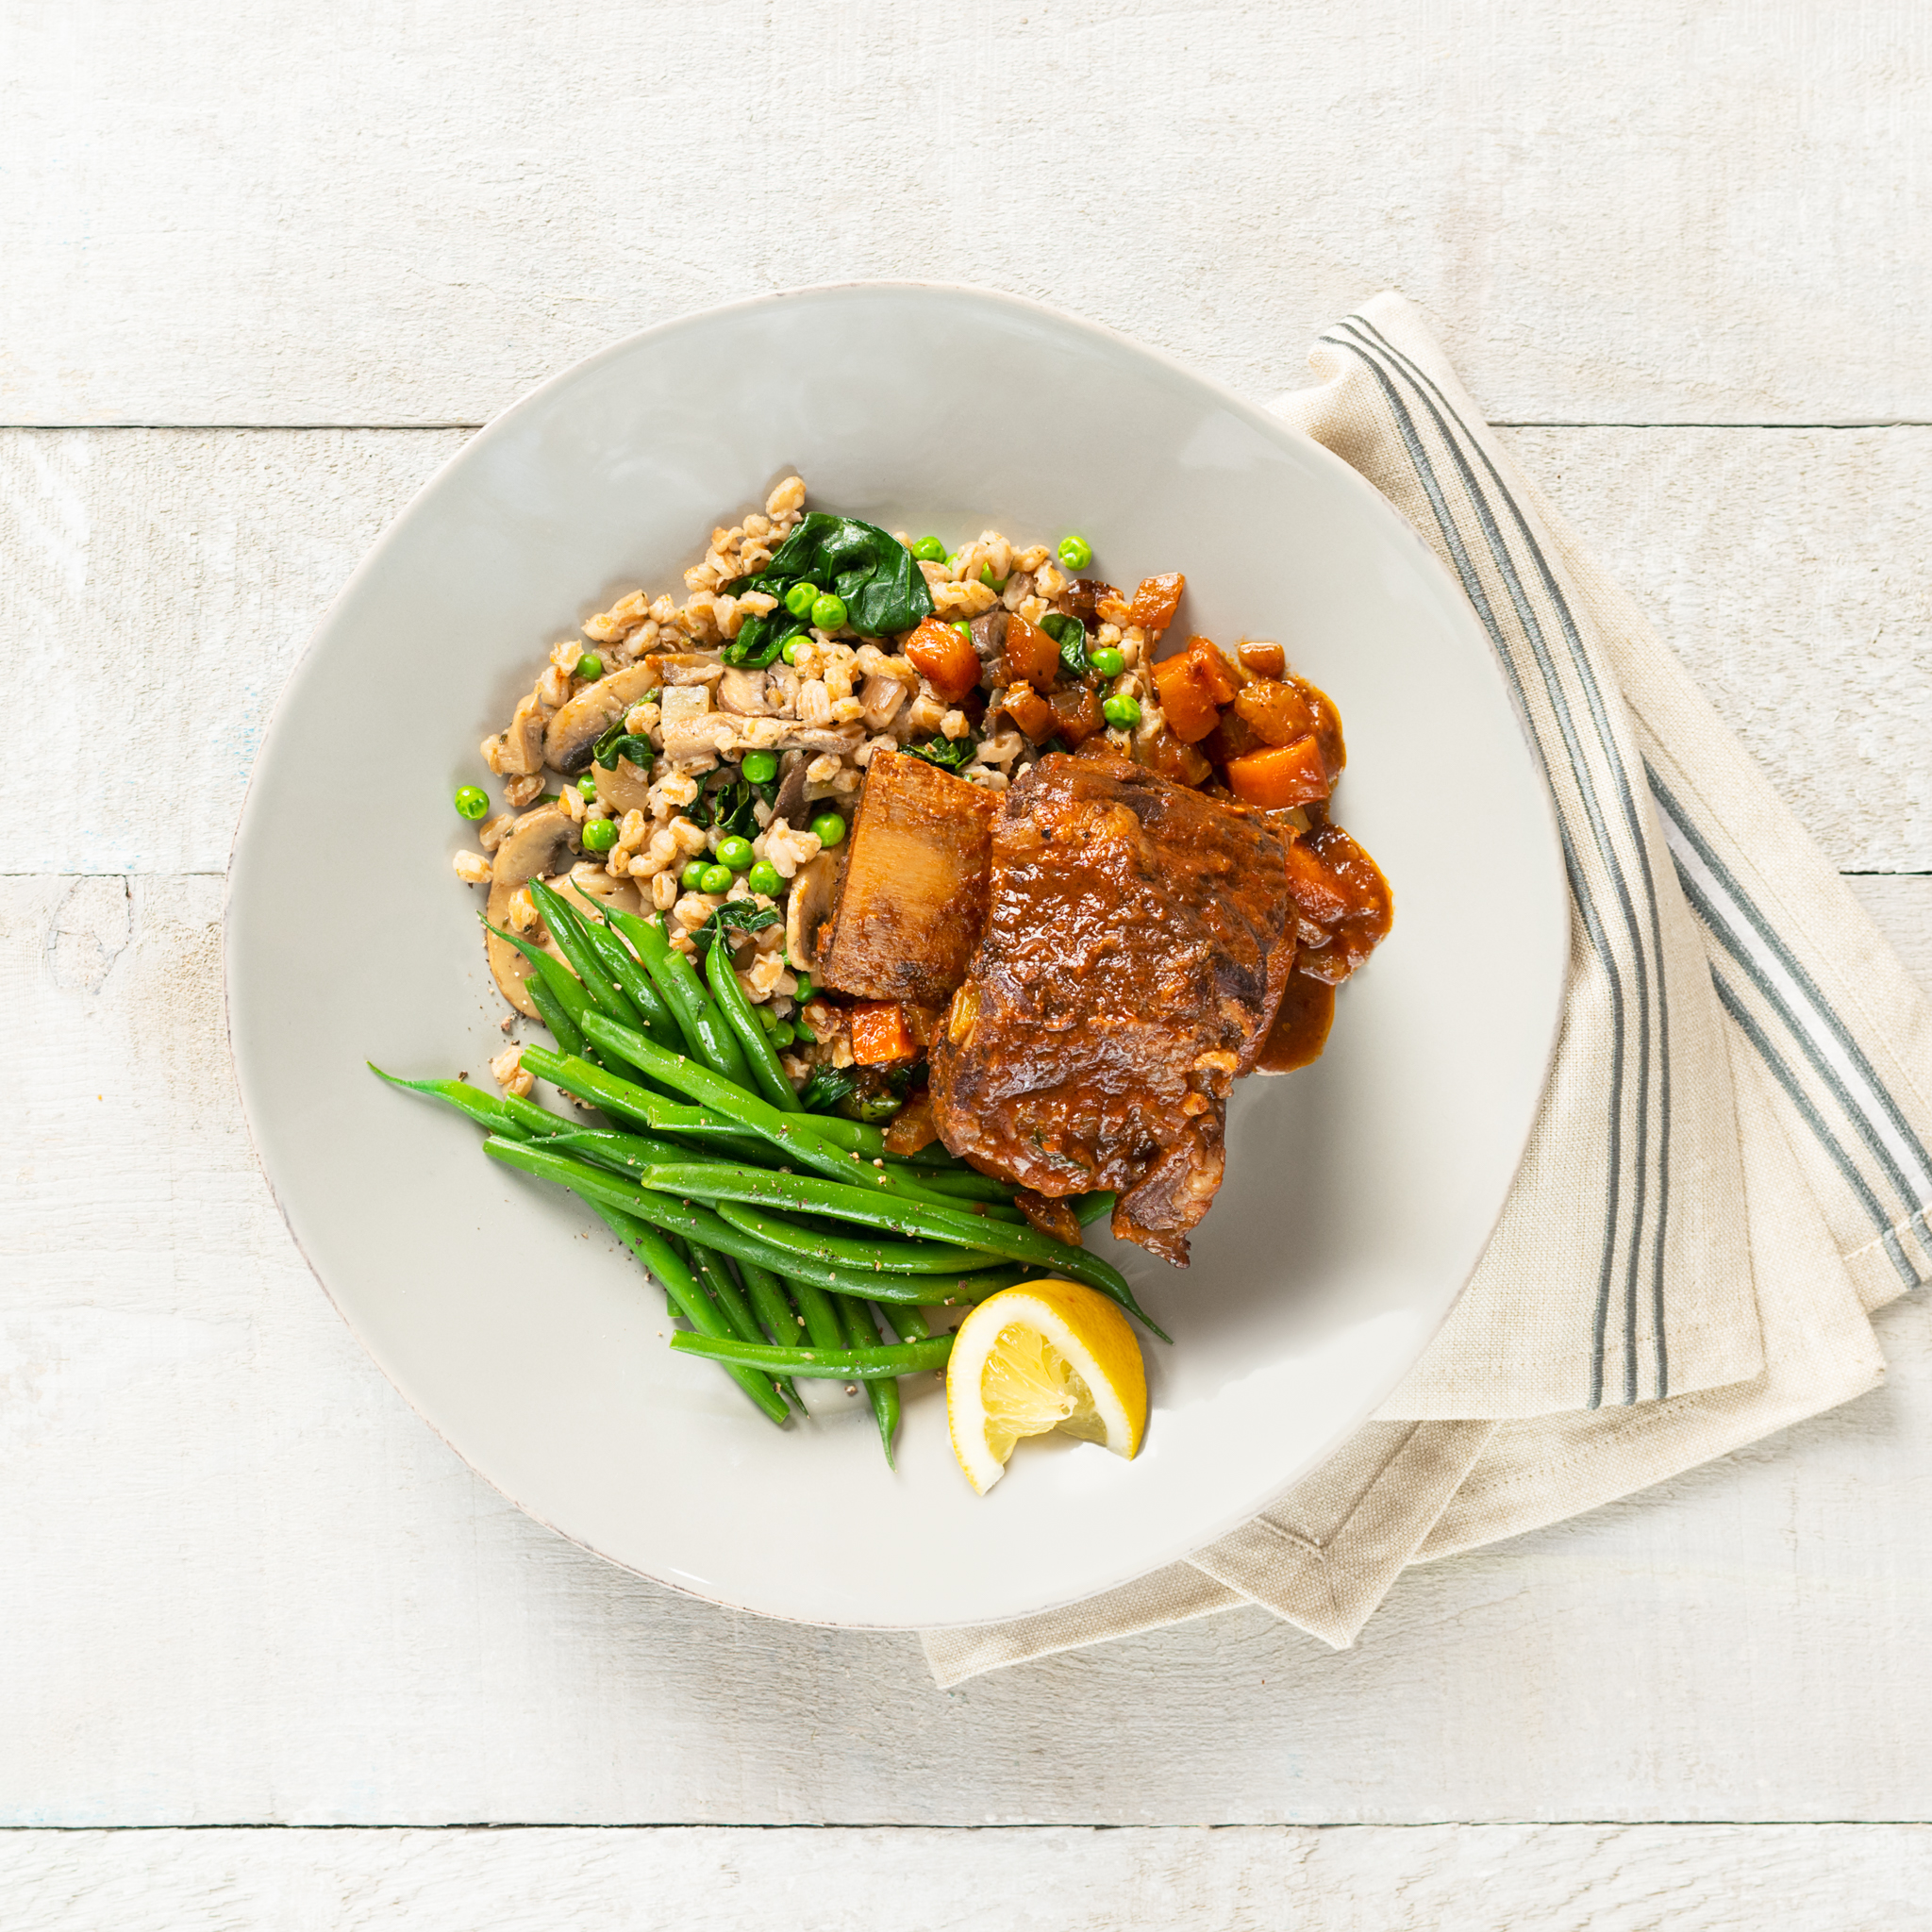 Tuscan braised short ribs with spinach & mushroom farro pilaf